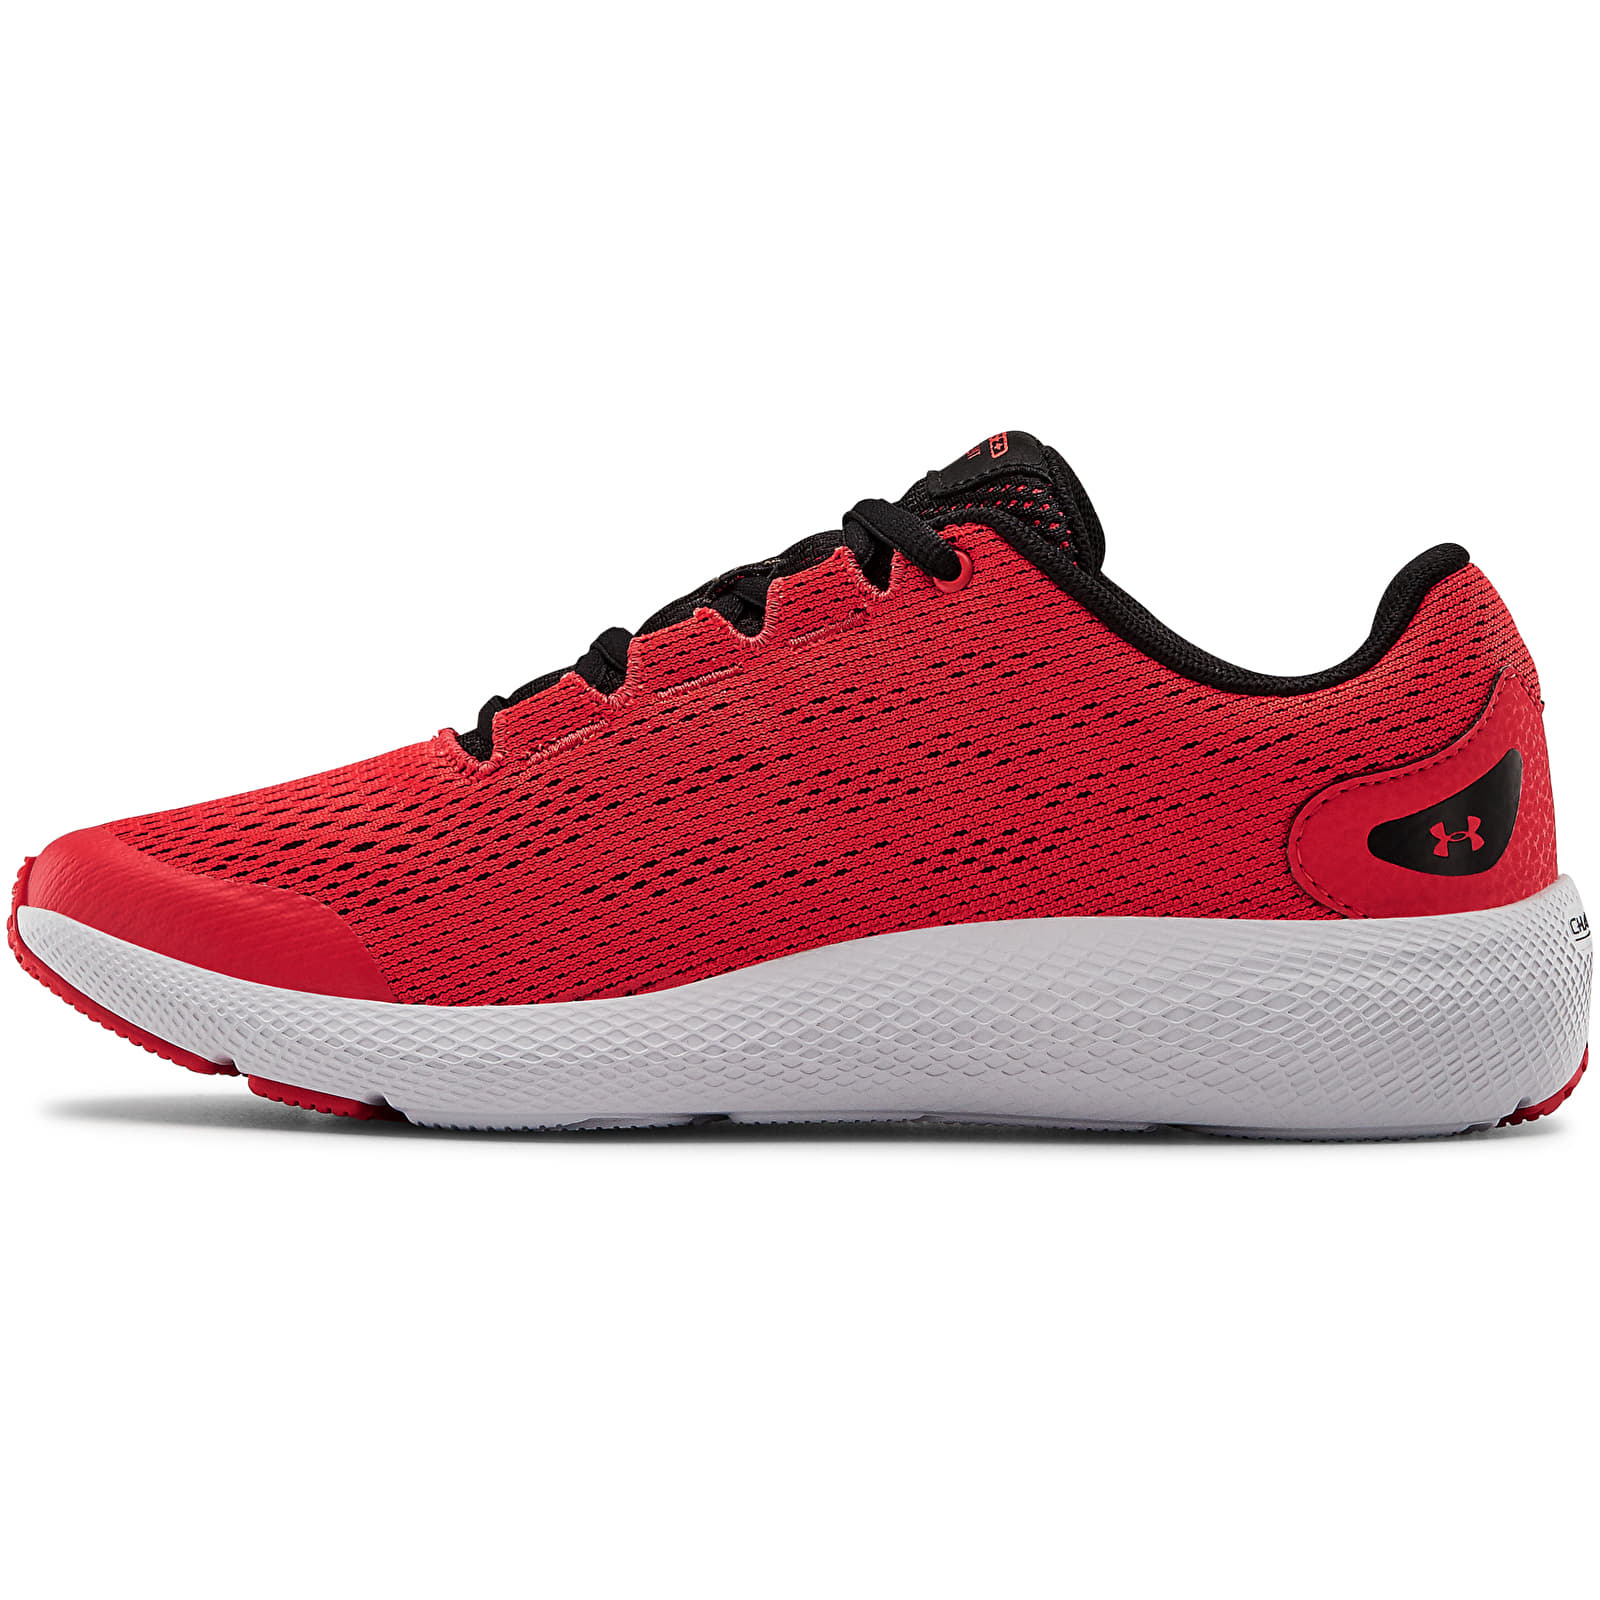 Under Armour GS Charged Pursuit 2 Red 3022860-600